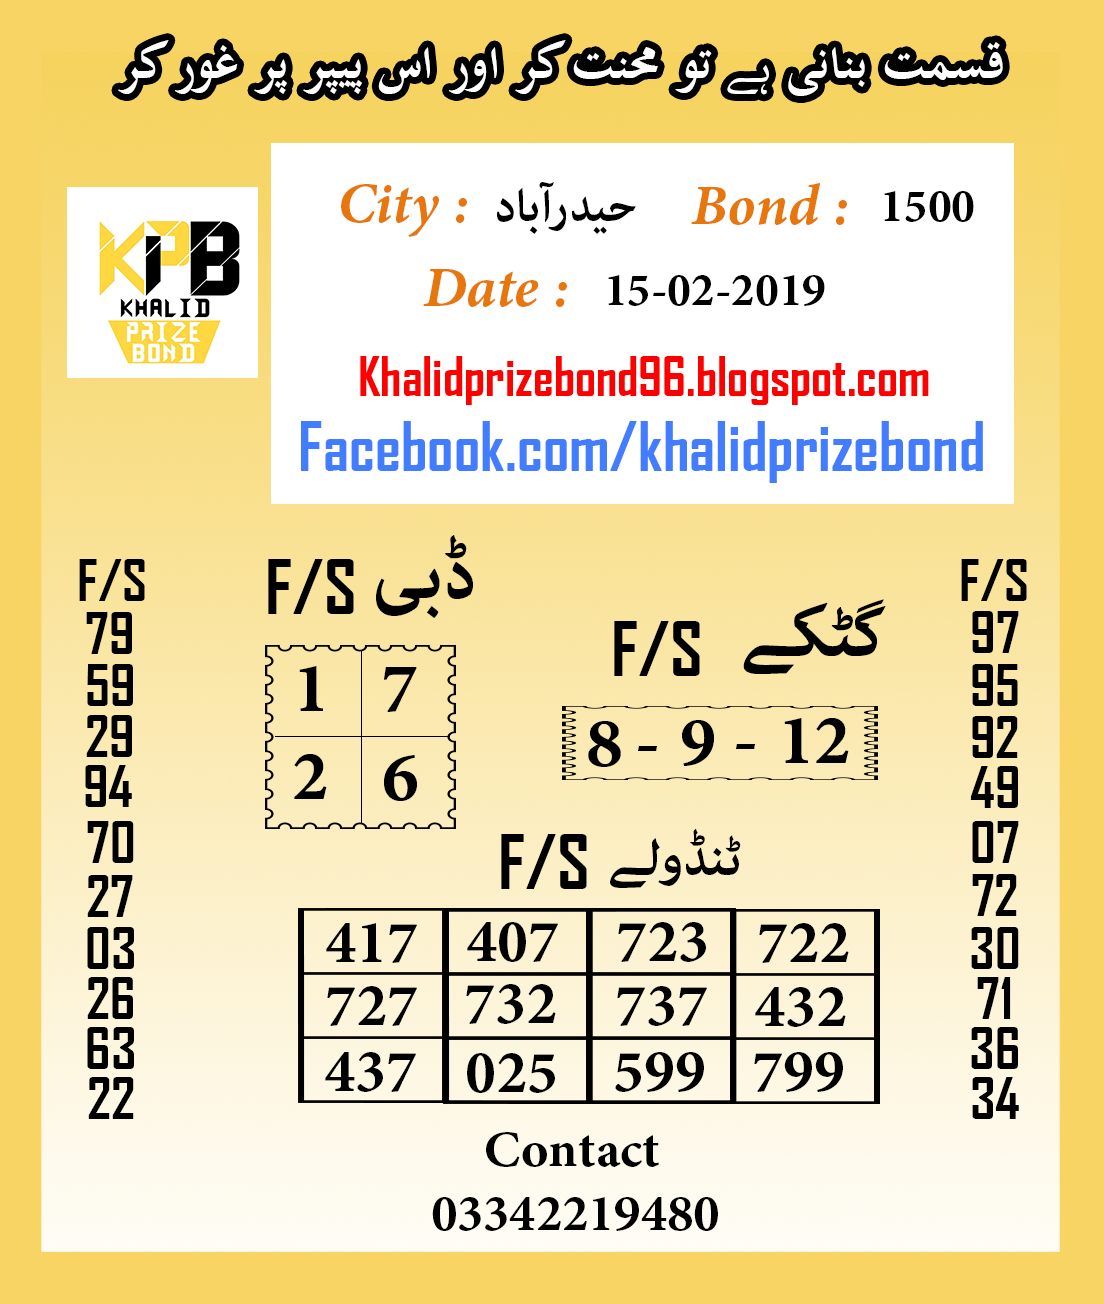 Prize Bond 1500 City Hyderabad F/S Akray And Tandolay VIP